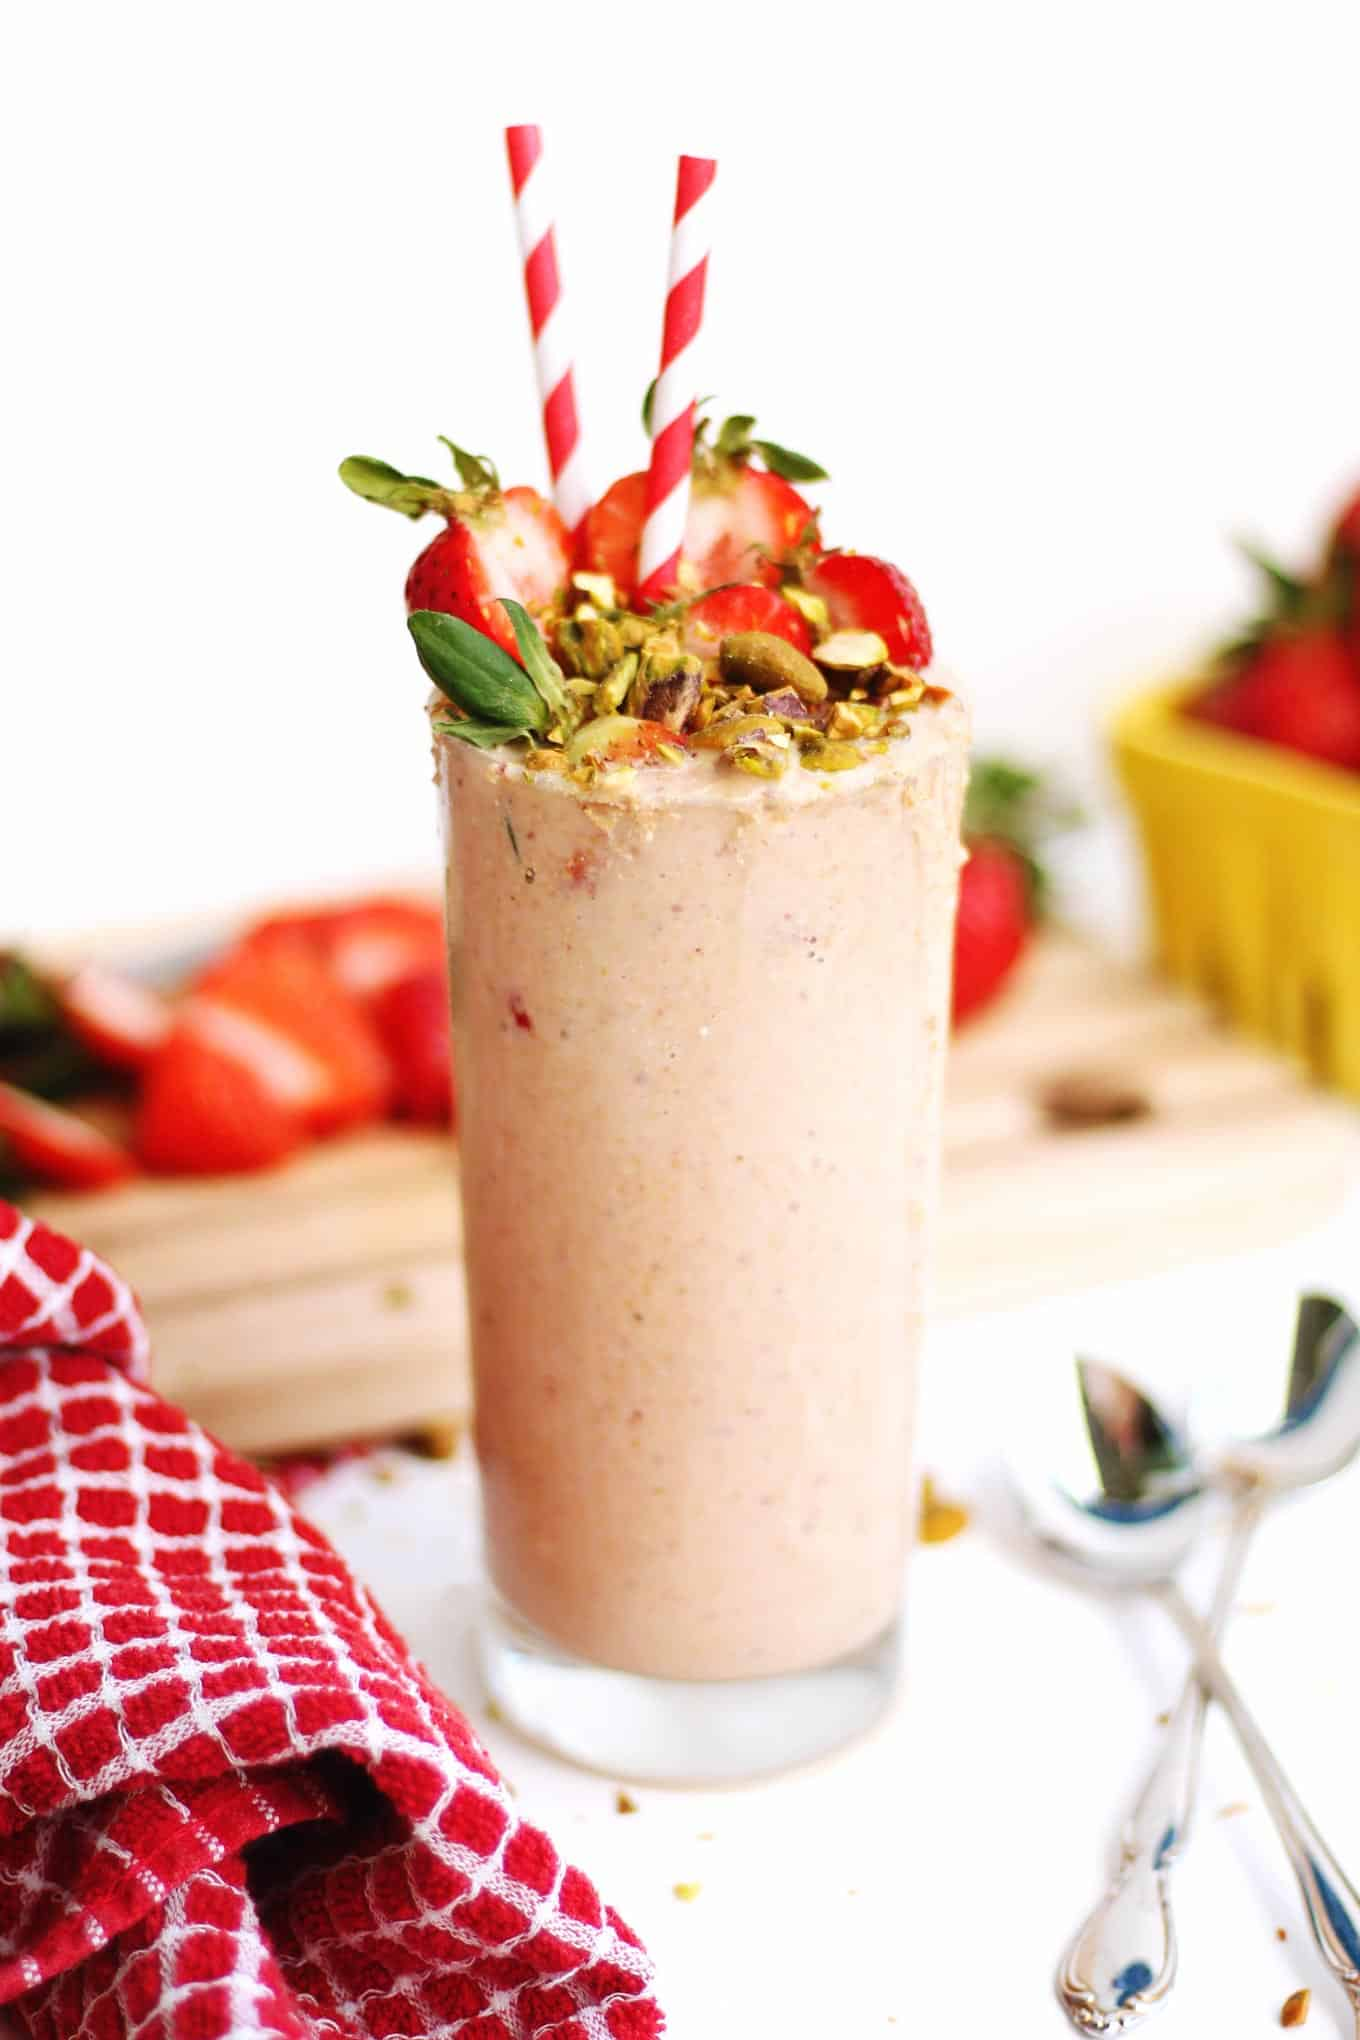 Creamy vegan strawberry smoothie with pistachios recipe! This dairy free pistachio strawberry smoothie is extra thick and nutty from real nuts! // Rhubarbarians